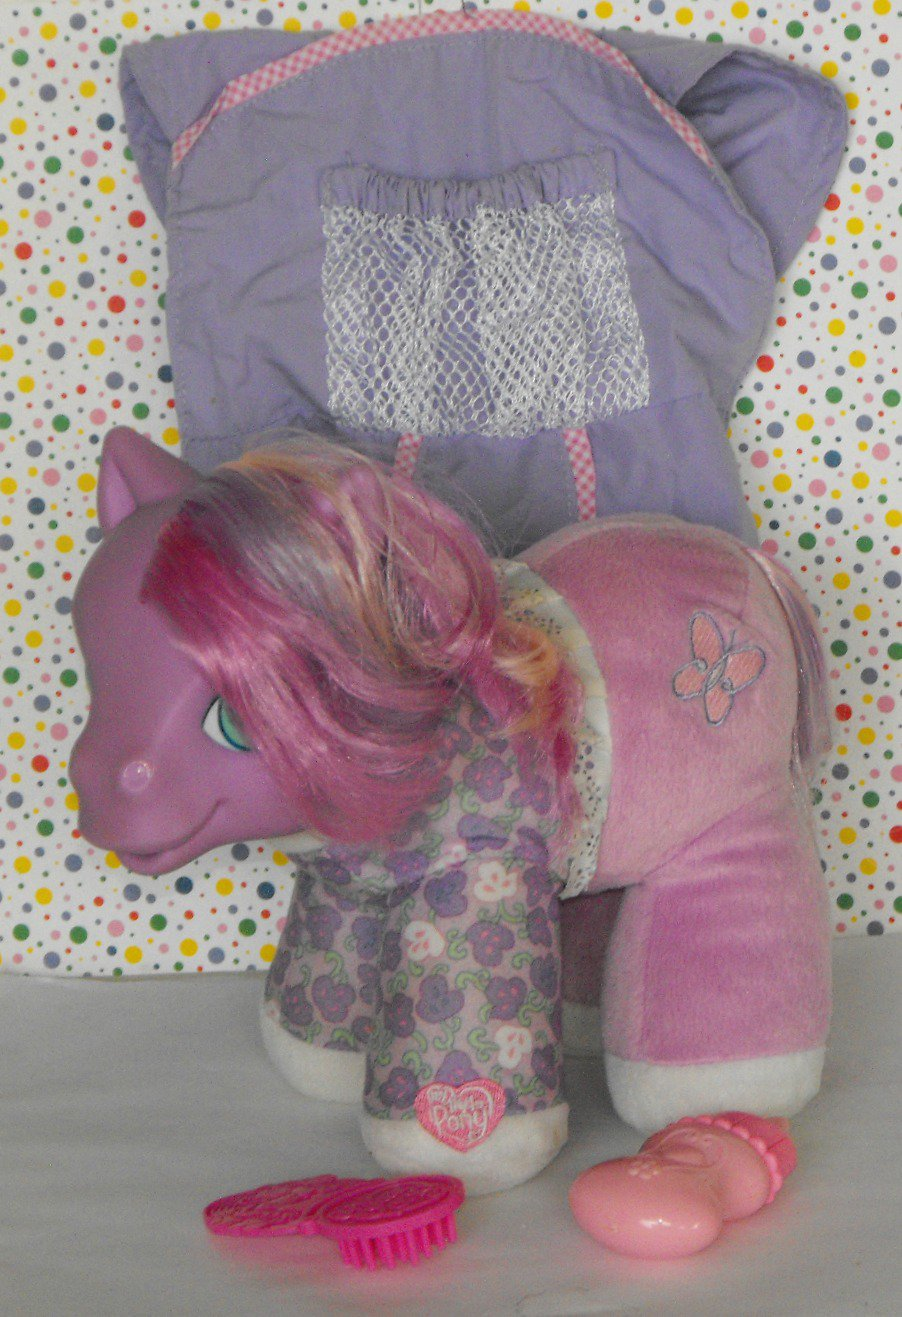 My Little Pony Baby Alive Talking 2003 Hasbro